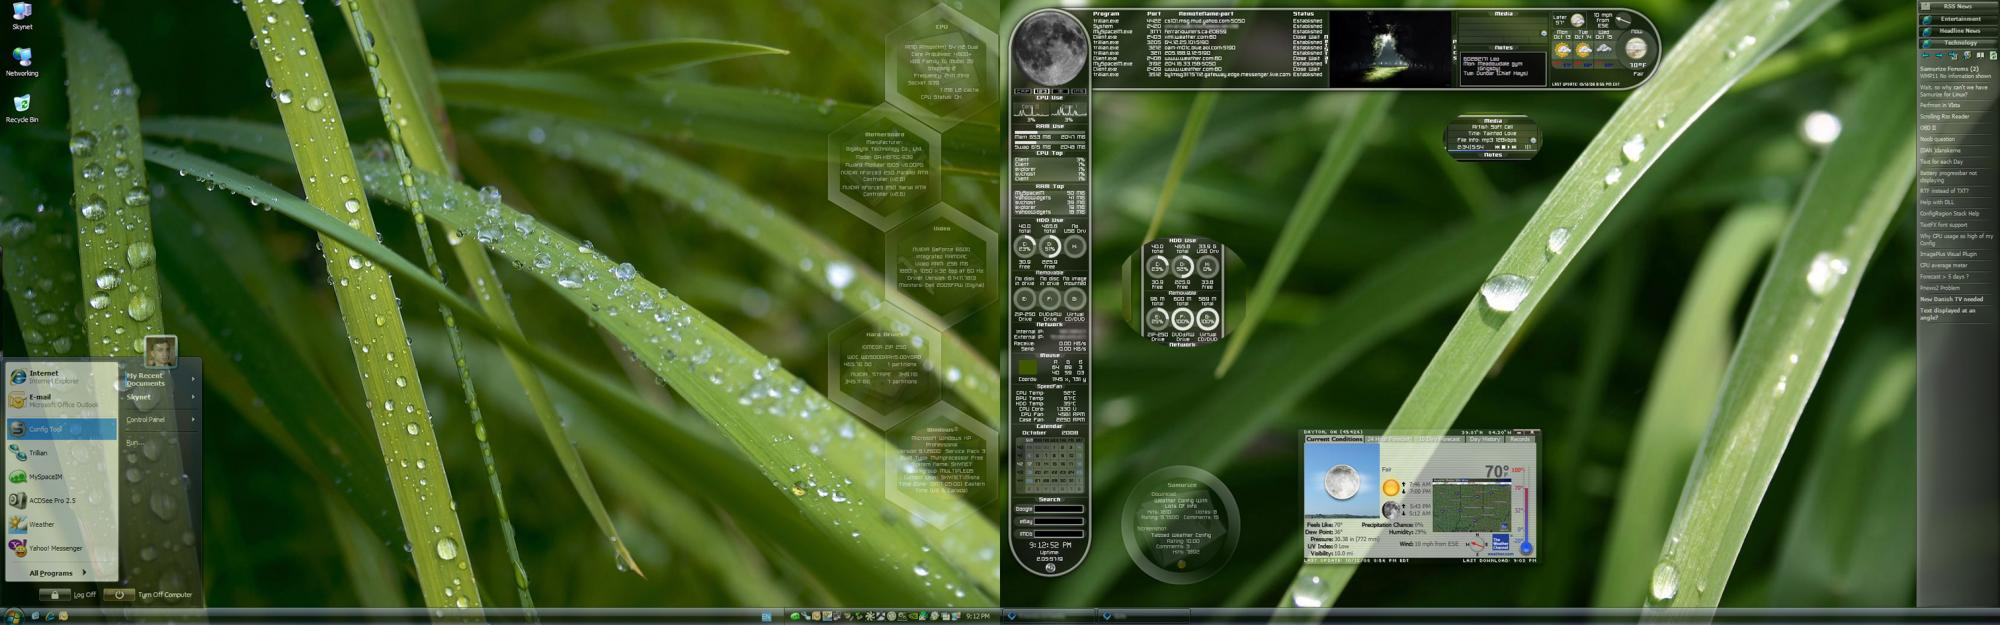 Title: Green Desktop